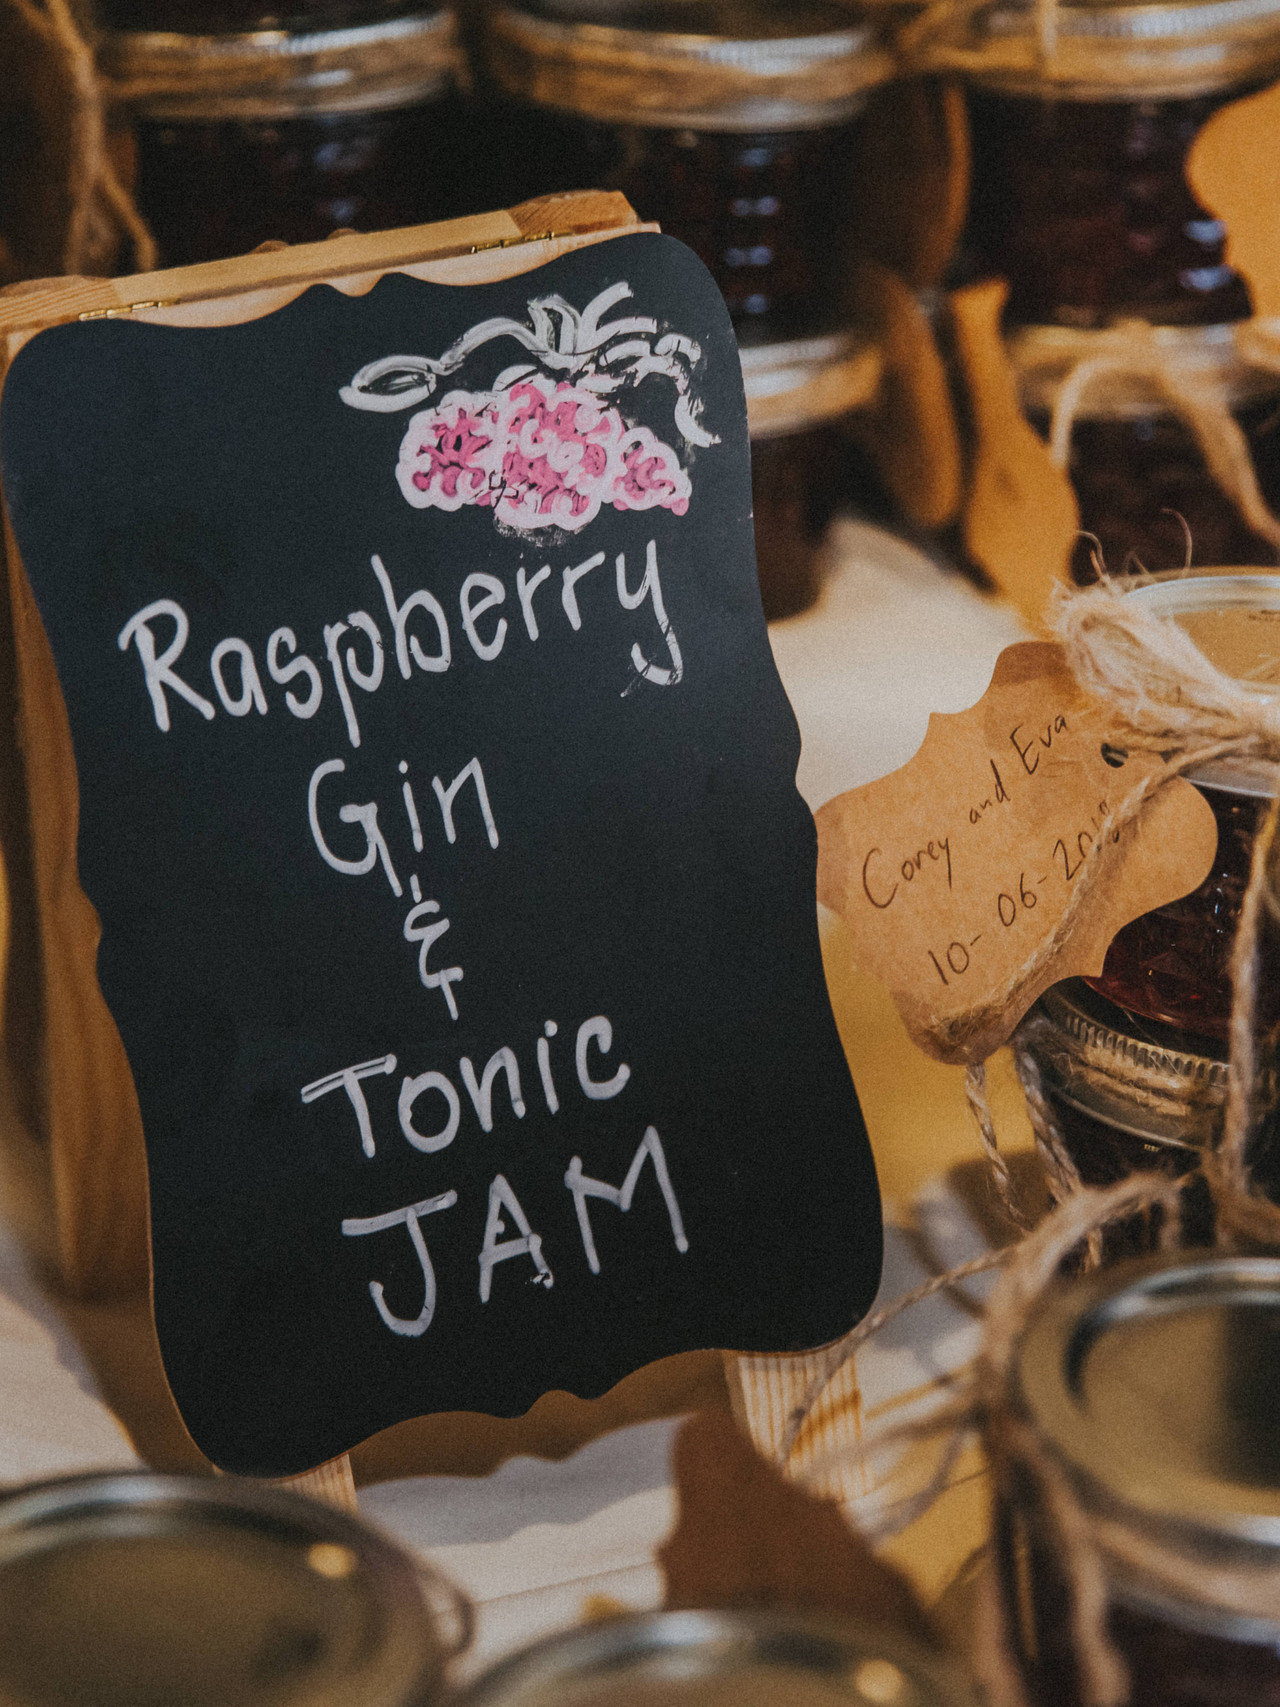 A close up of a sign with Raspberry Gin & Tonic Jam